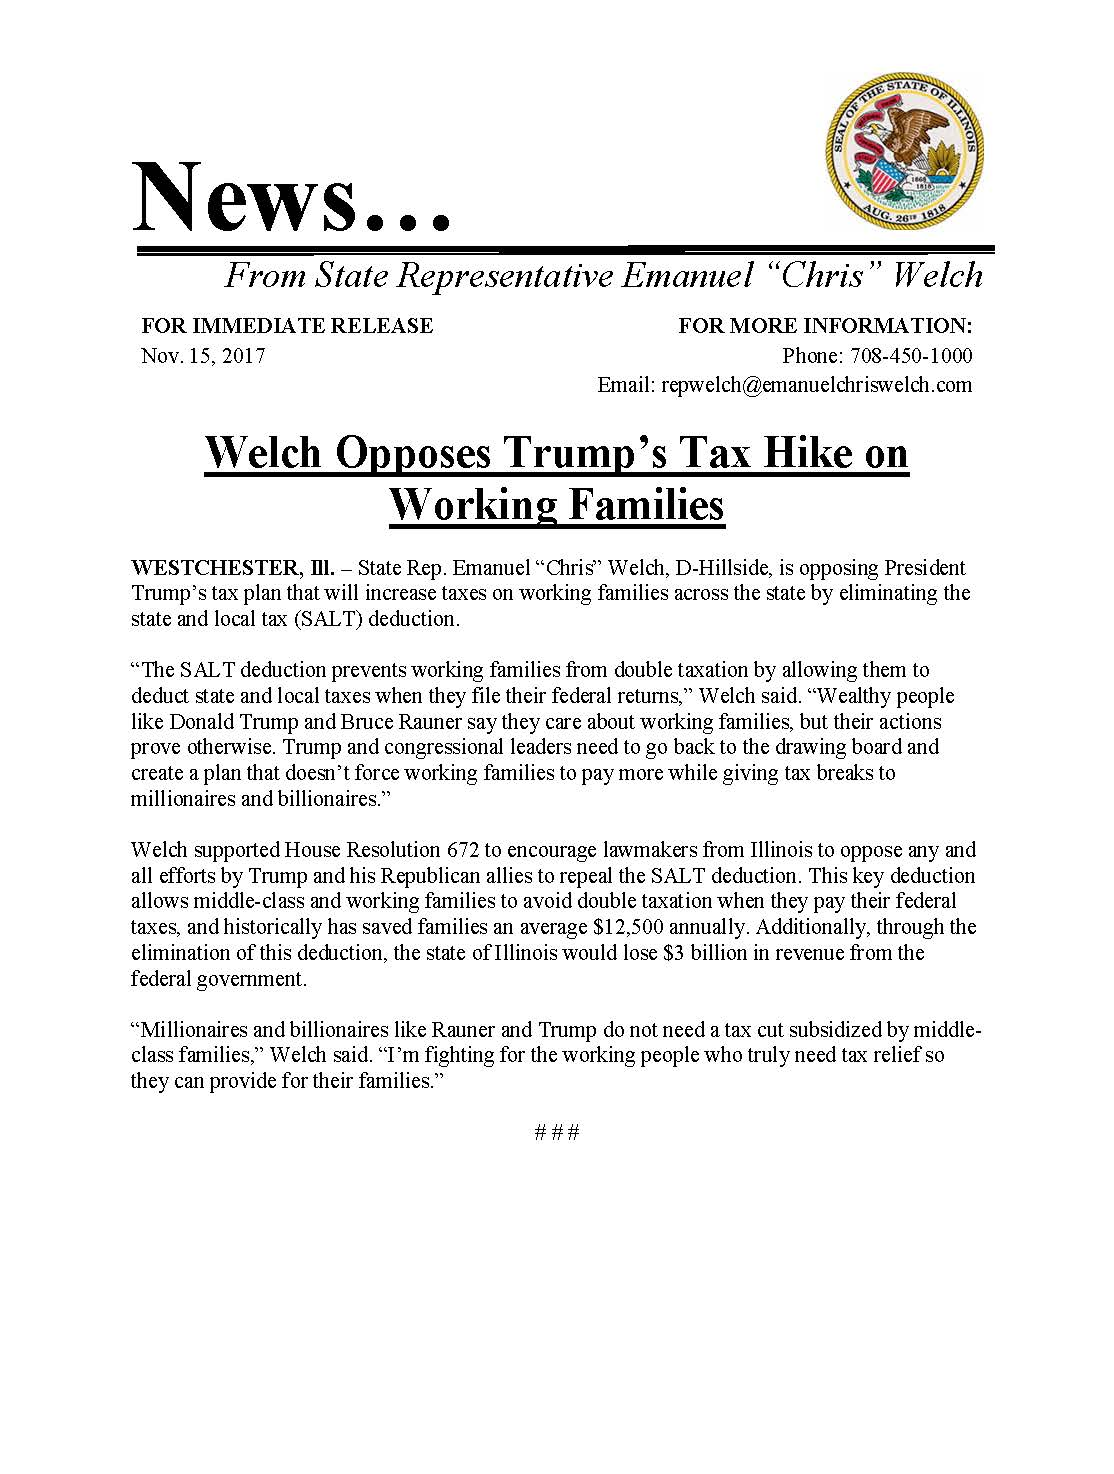 Welch Opposes Trump's Tax Hike on Working Families  (November 15, 2017)